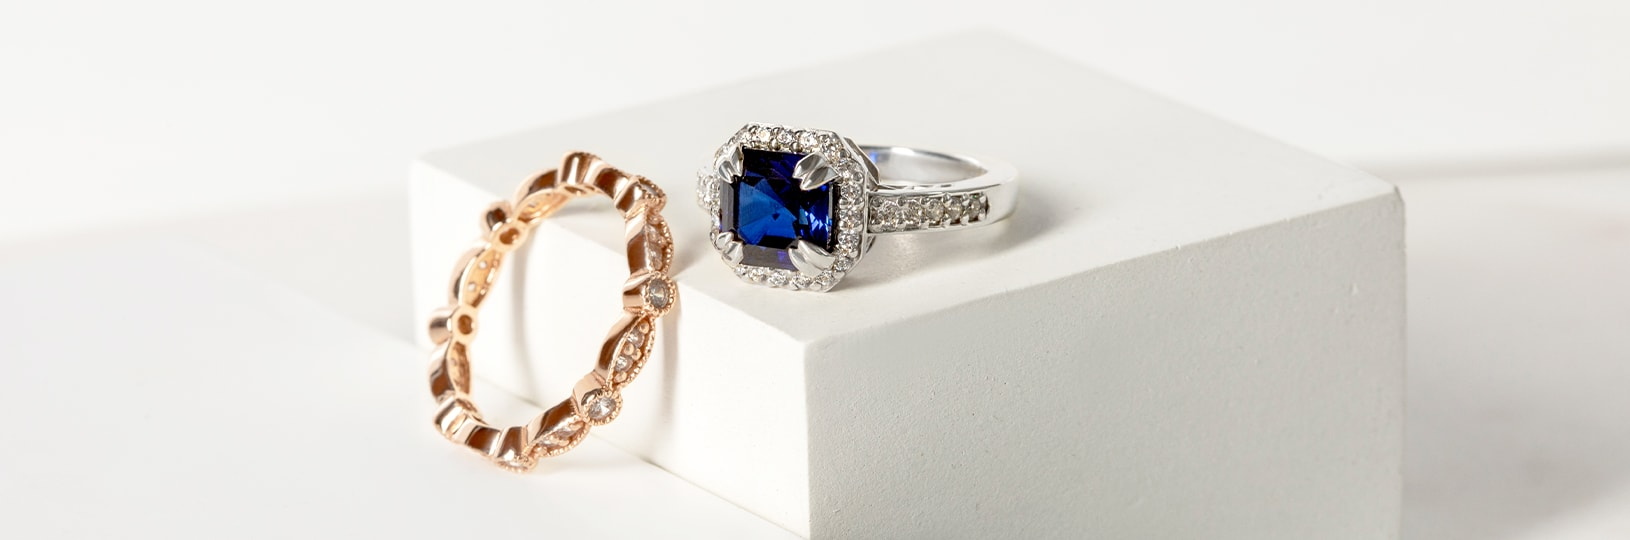 A yellow gold ring and a white gold ring